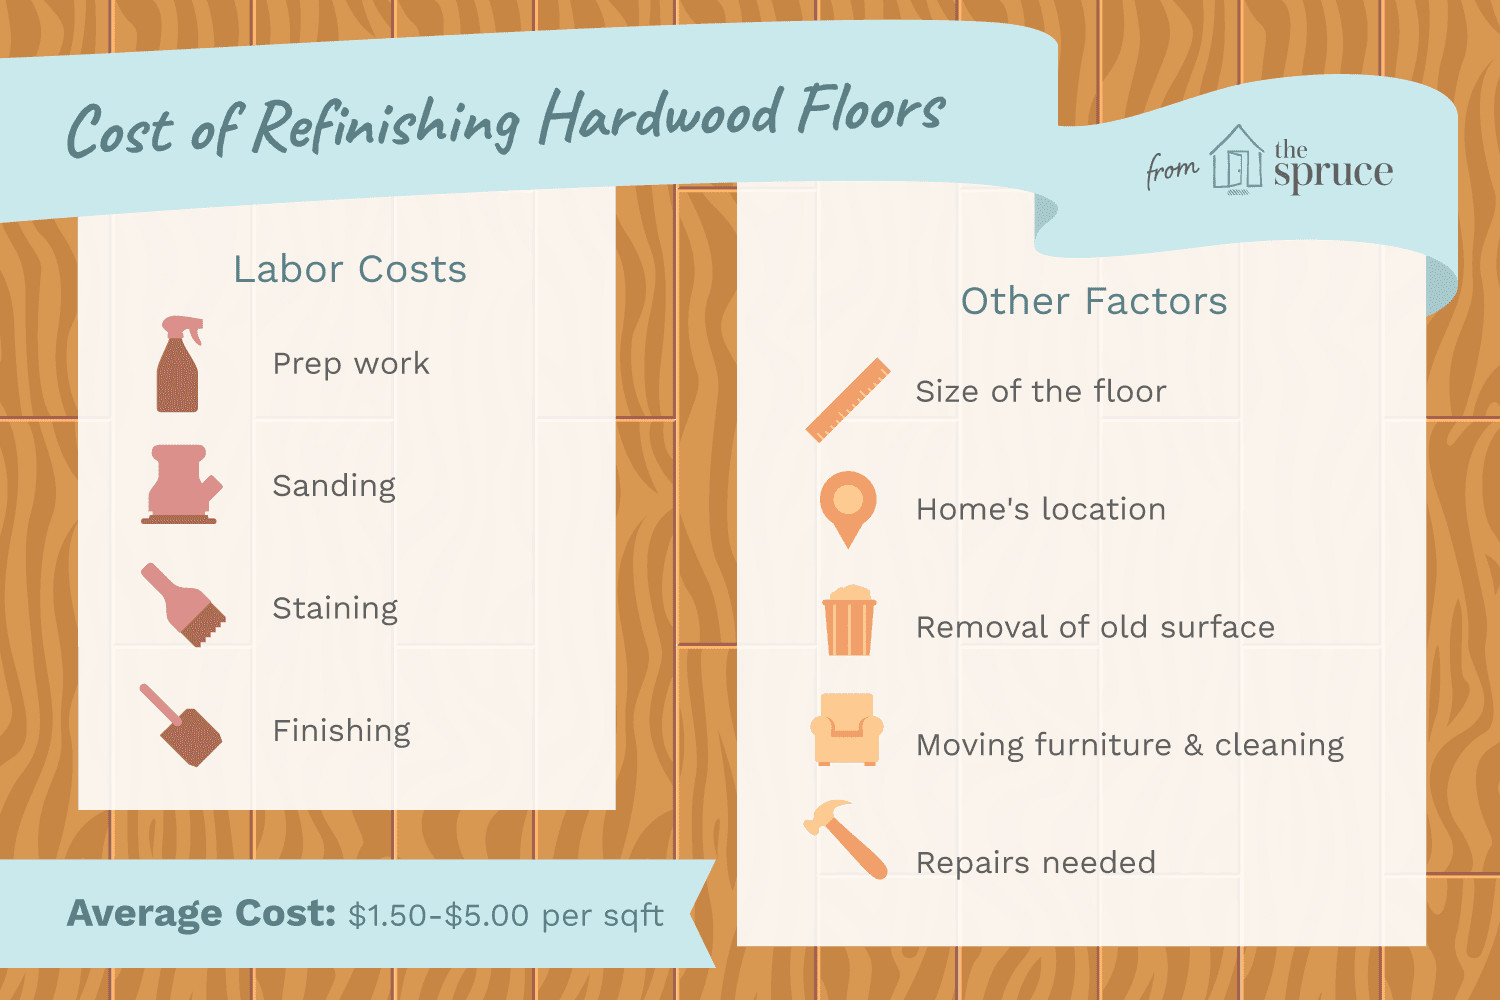 hardwood floor refinishing equipment of the cost to refinish hardwood floors pertaining to cost to refinish hardwood floors 1314853 final 5bb6259346e0fb0026825ce2